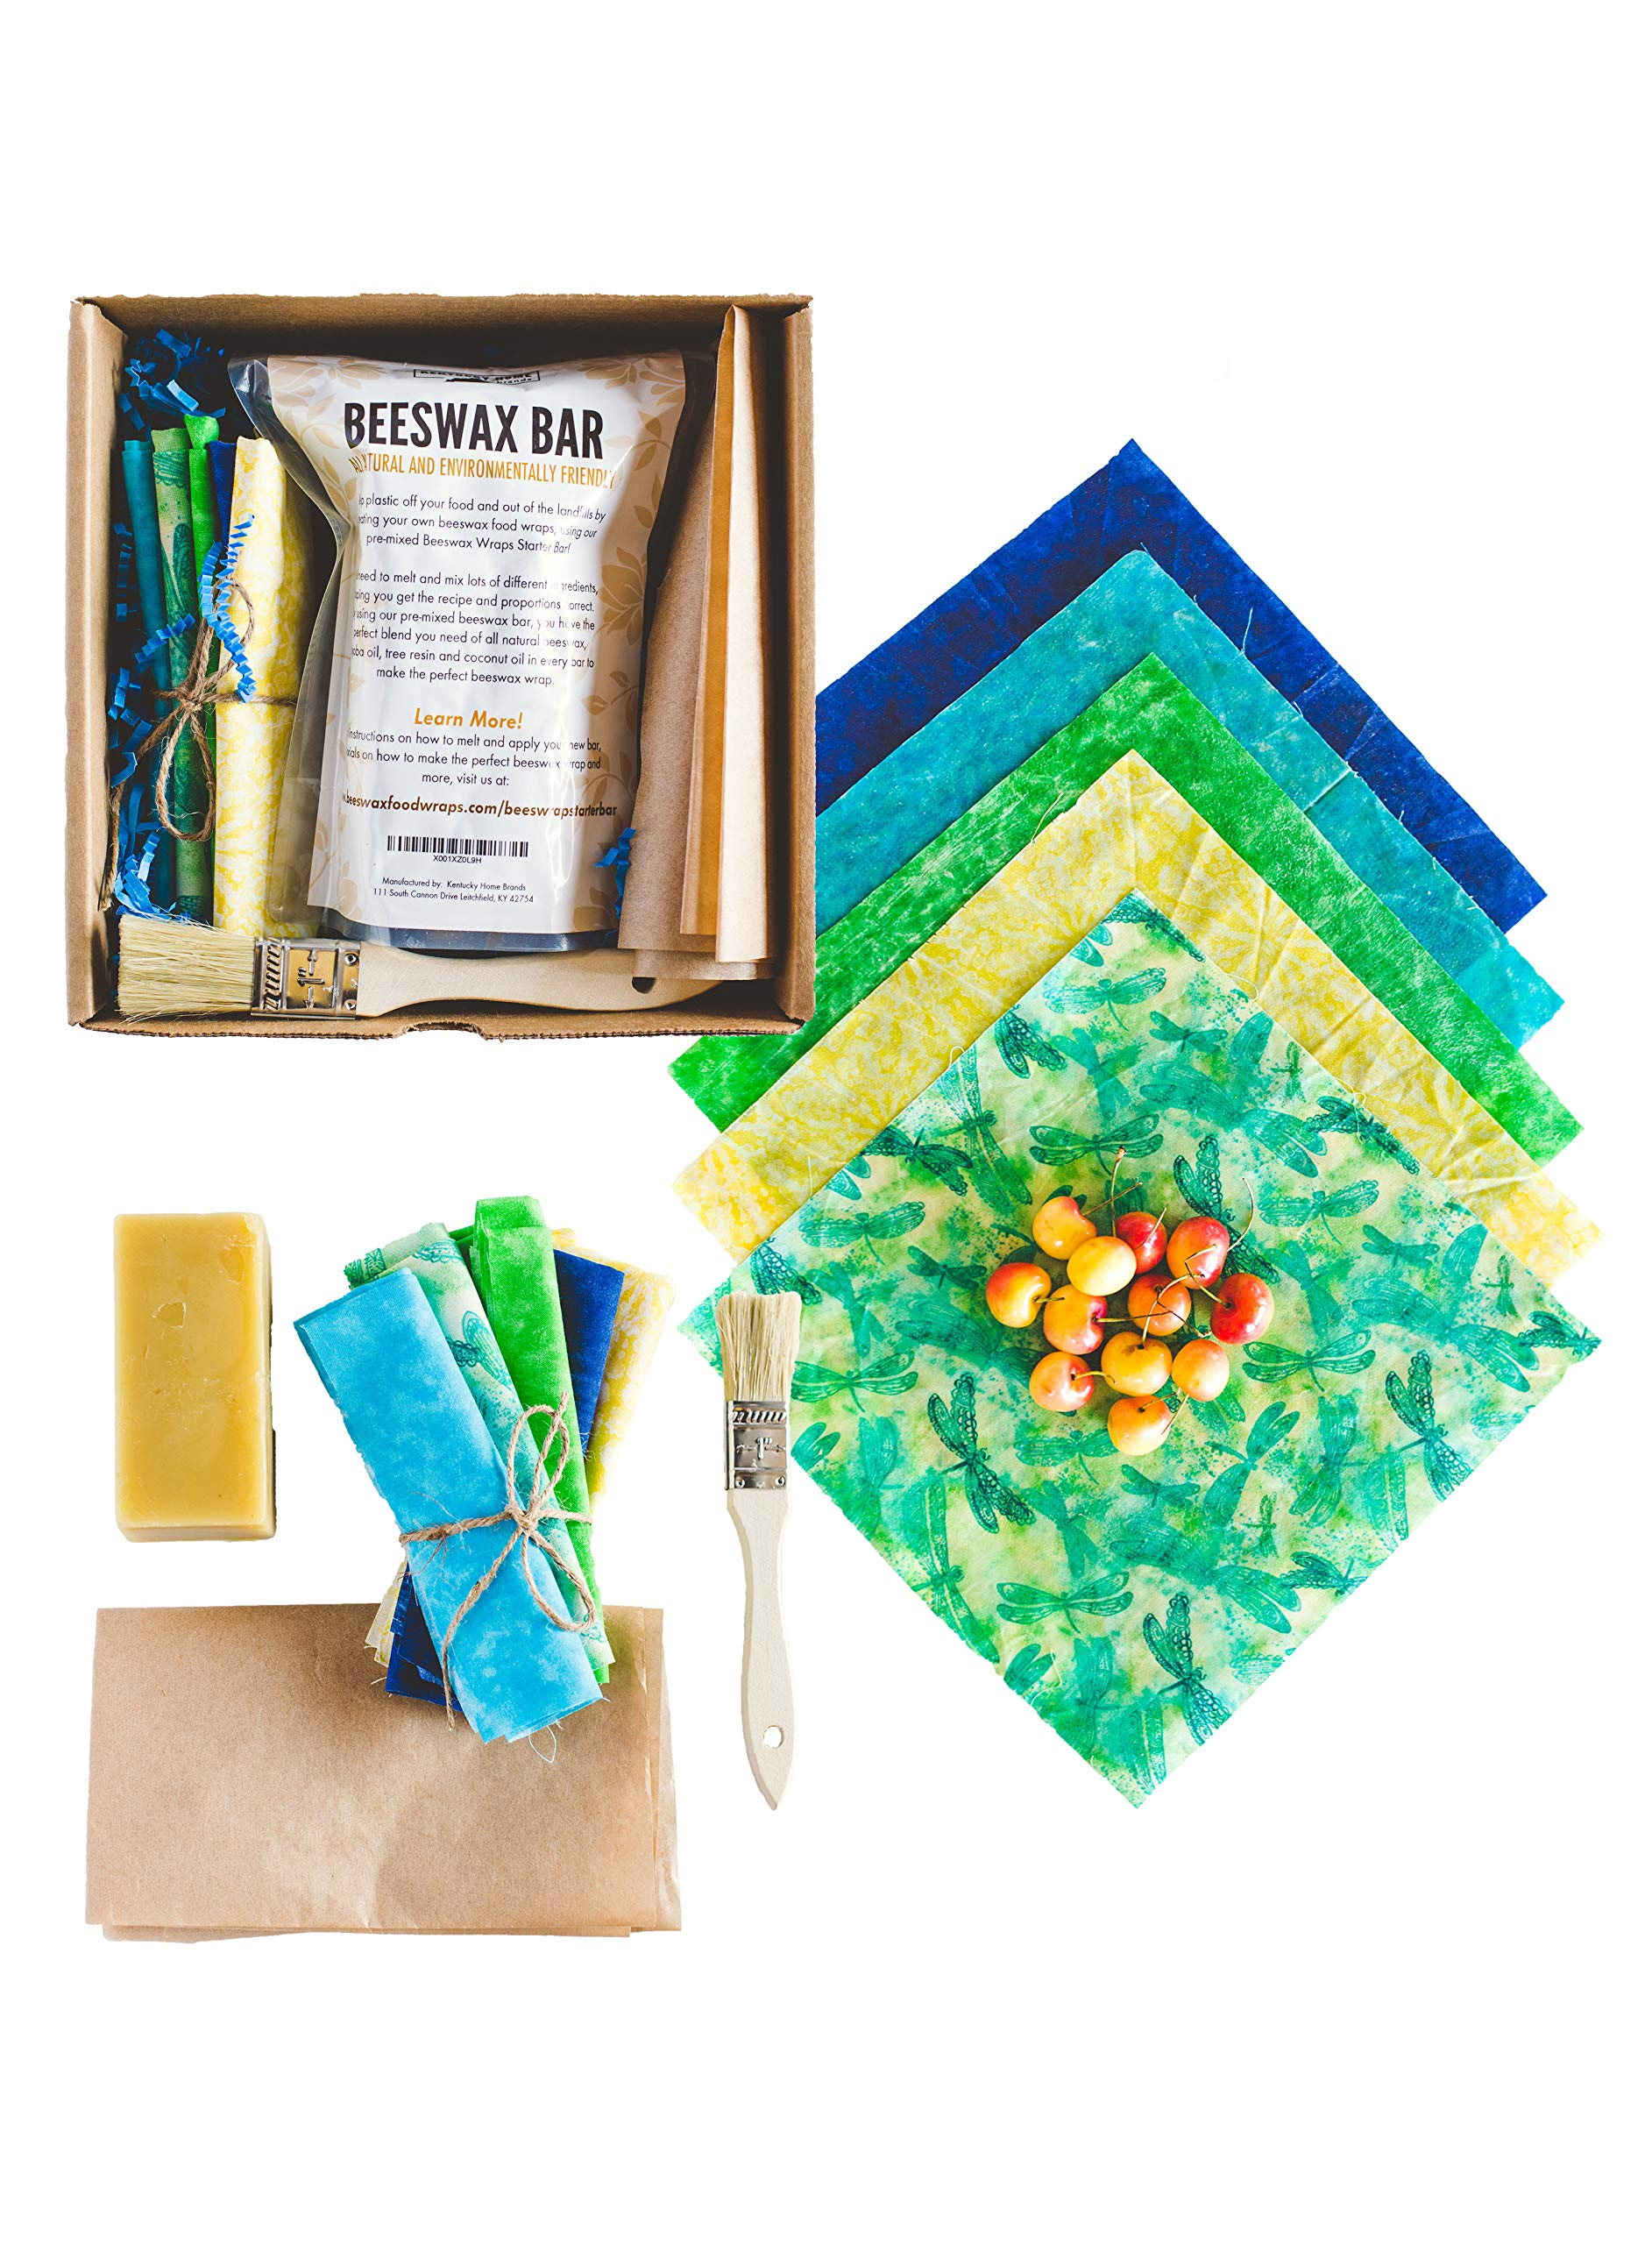 Bees4Seas DIY Premium Natural Beeswax Food Storage Wrap/Sandwich Kit.Create 5 Large Eco-Friendly Biodegradable Reusable Food Wraps. Healthy Plastic Alternative BPA and Chemical Free.Made In The USA.